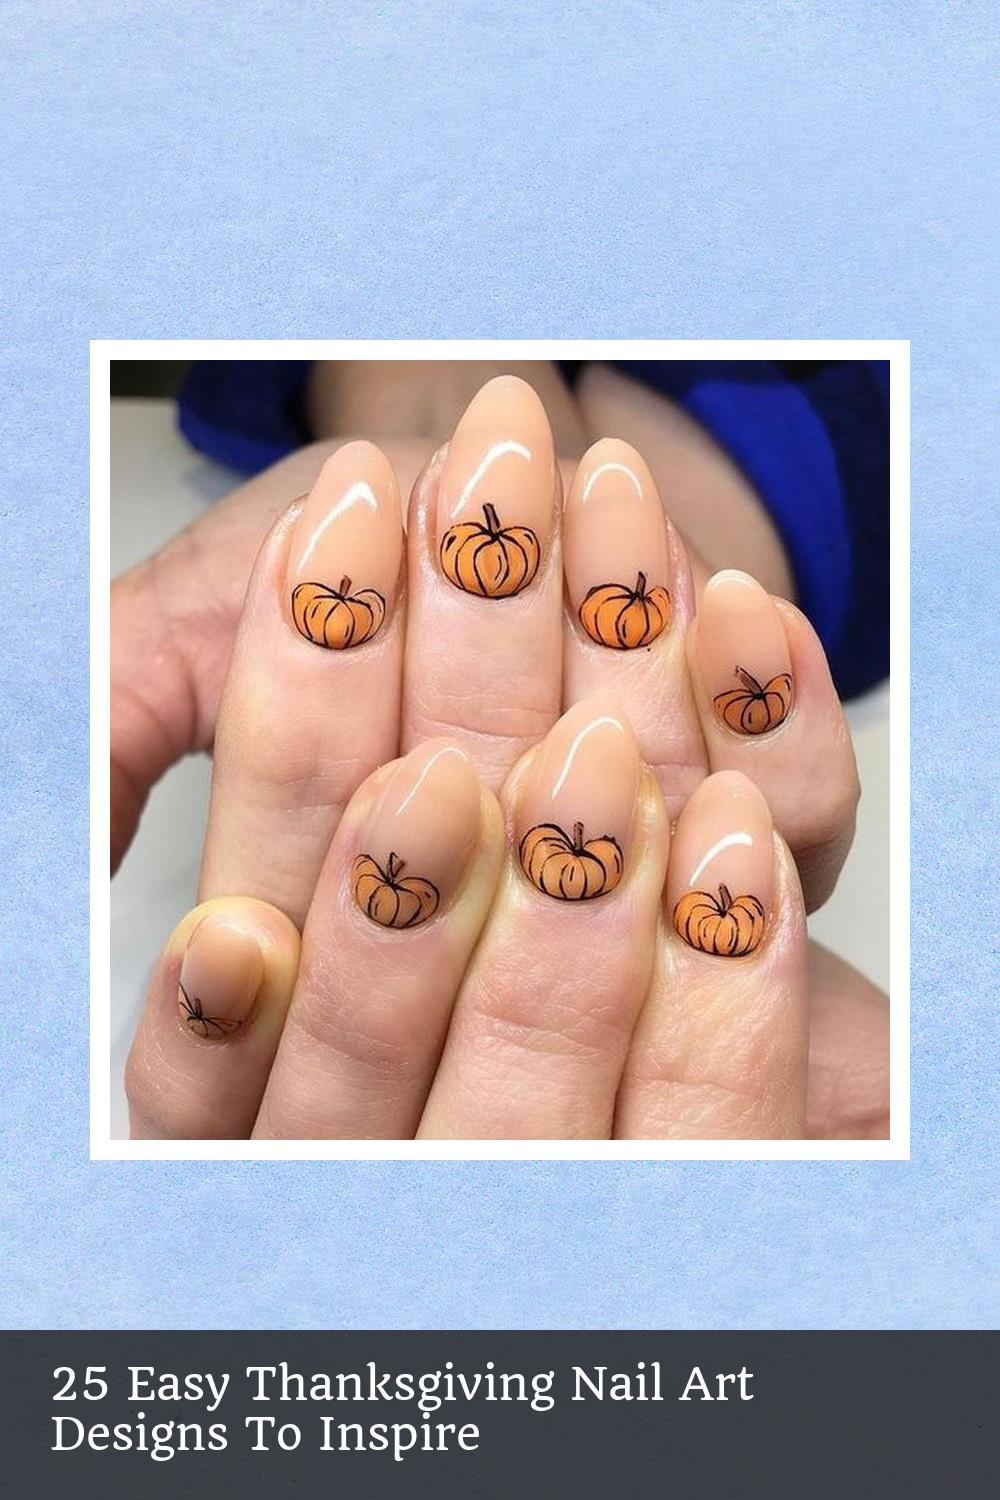 25 Easy Thanksgiving Nail Art Designs To Inspire 13